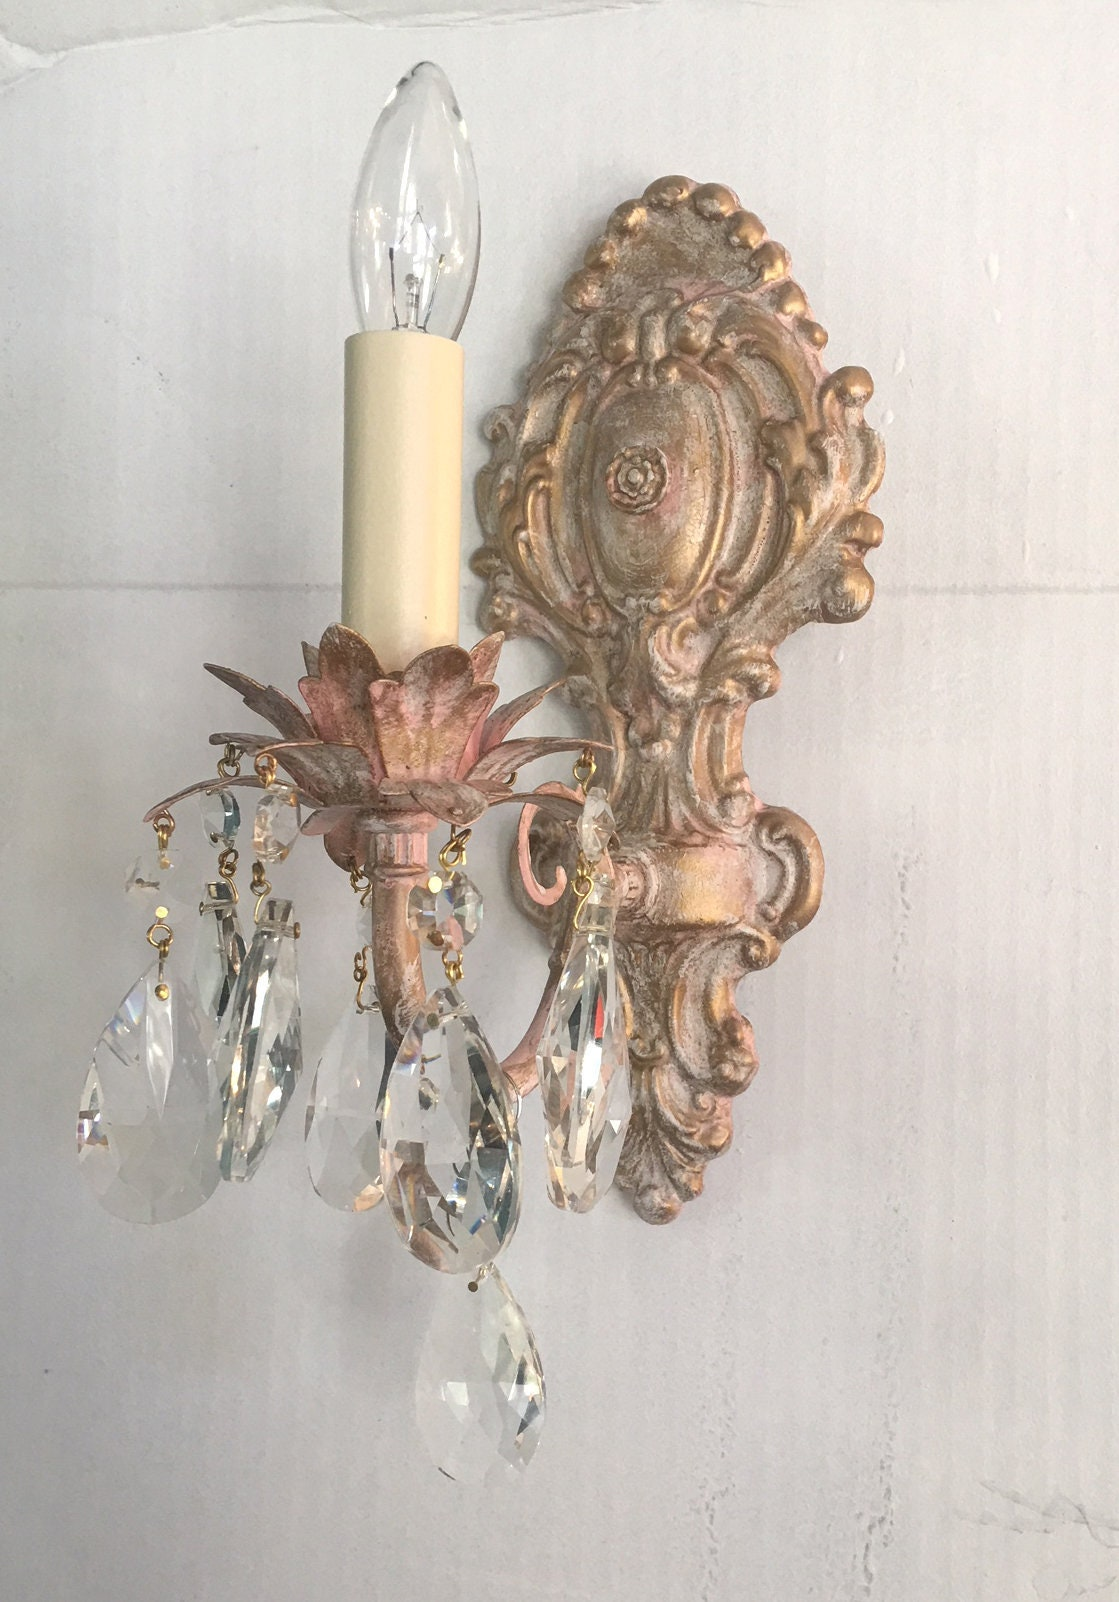 Custom Victorian Style Single Light Electric Wall Light Sconce Shabby Chic Style Pink Cream Gold Finish Clear Crystals Solid Brass